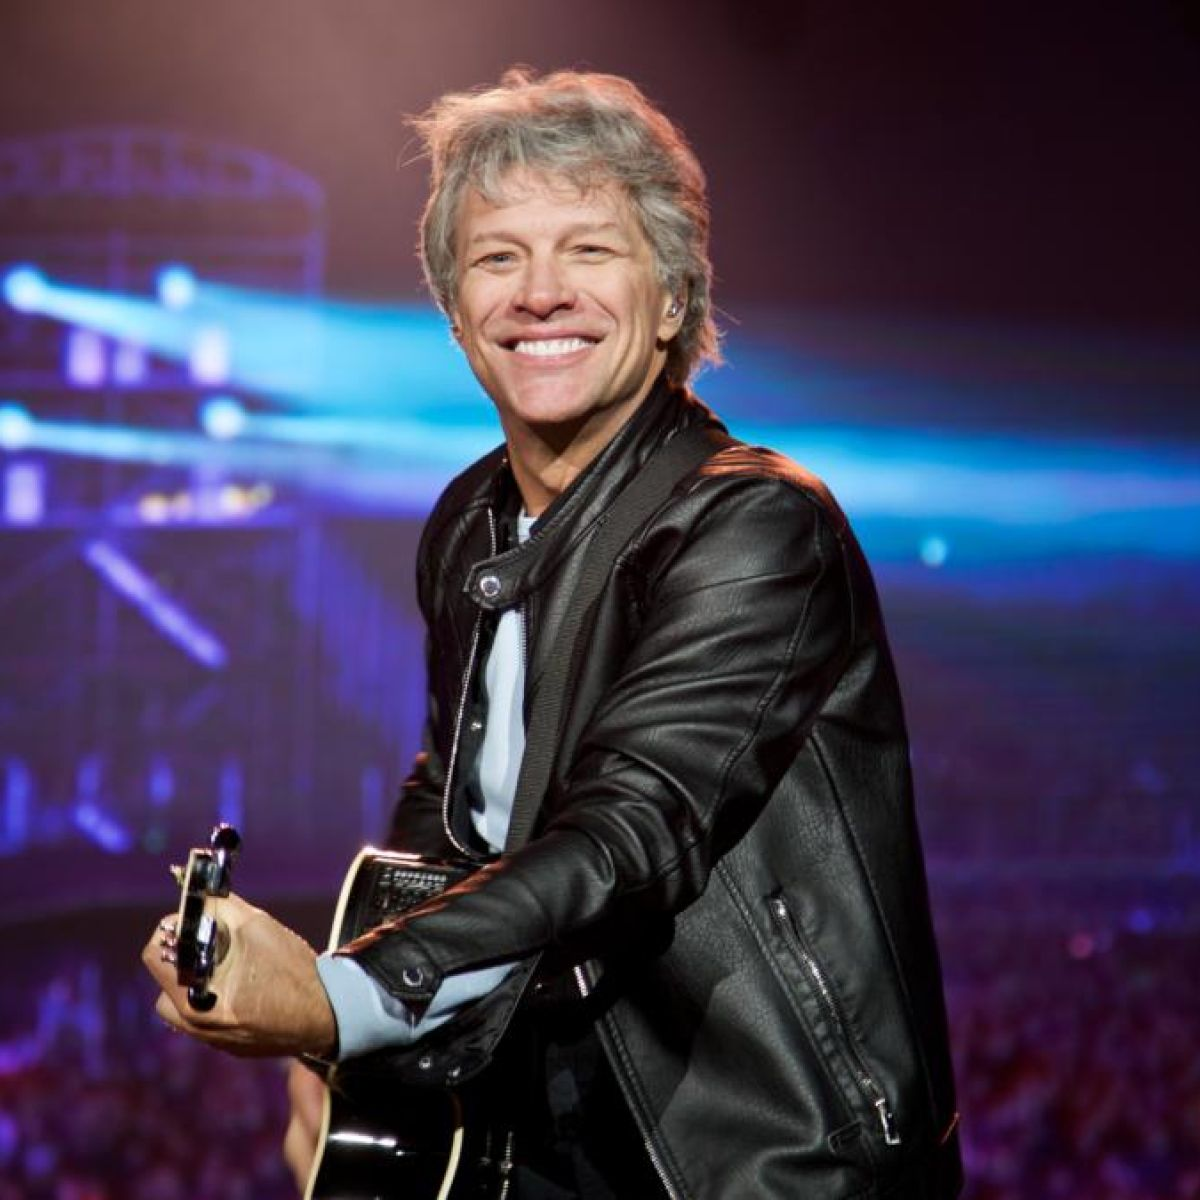 Fairytale Of New York Horrified Fans React To Jon Bon Jovi S New Cover